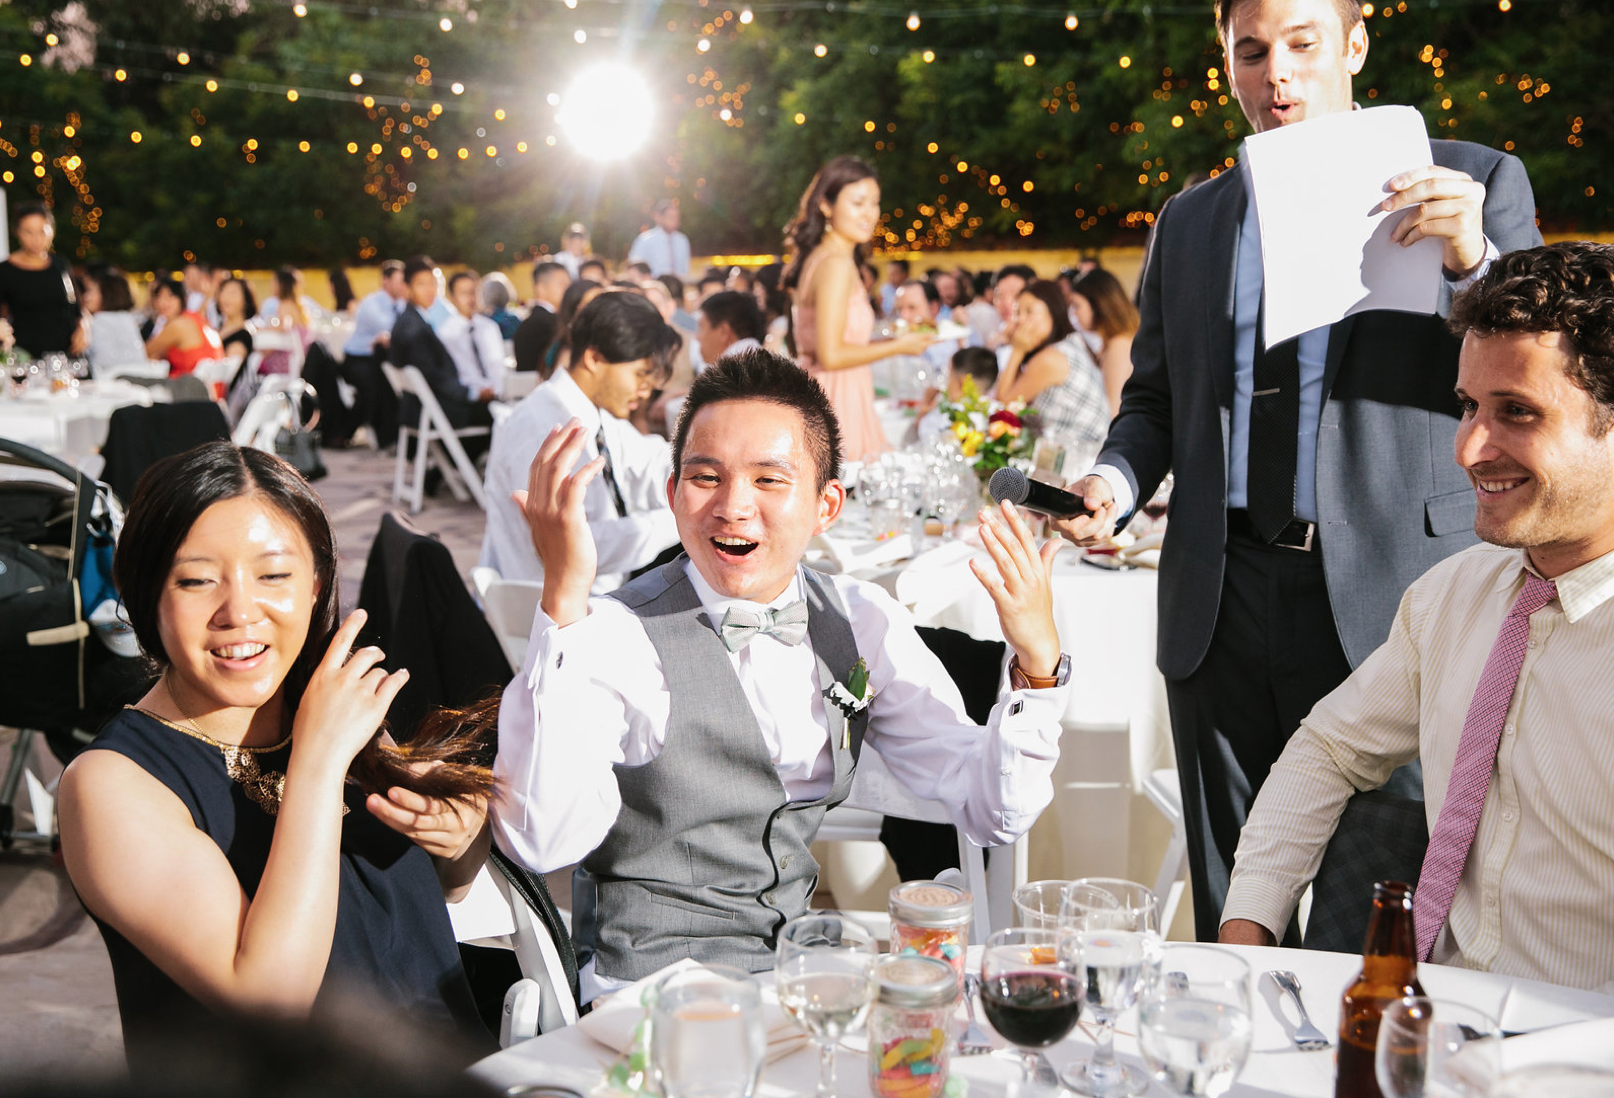 The Most Fun Wedding Reception Activity Ideas Calyxta